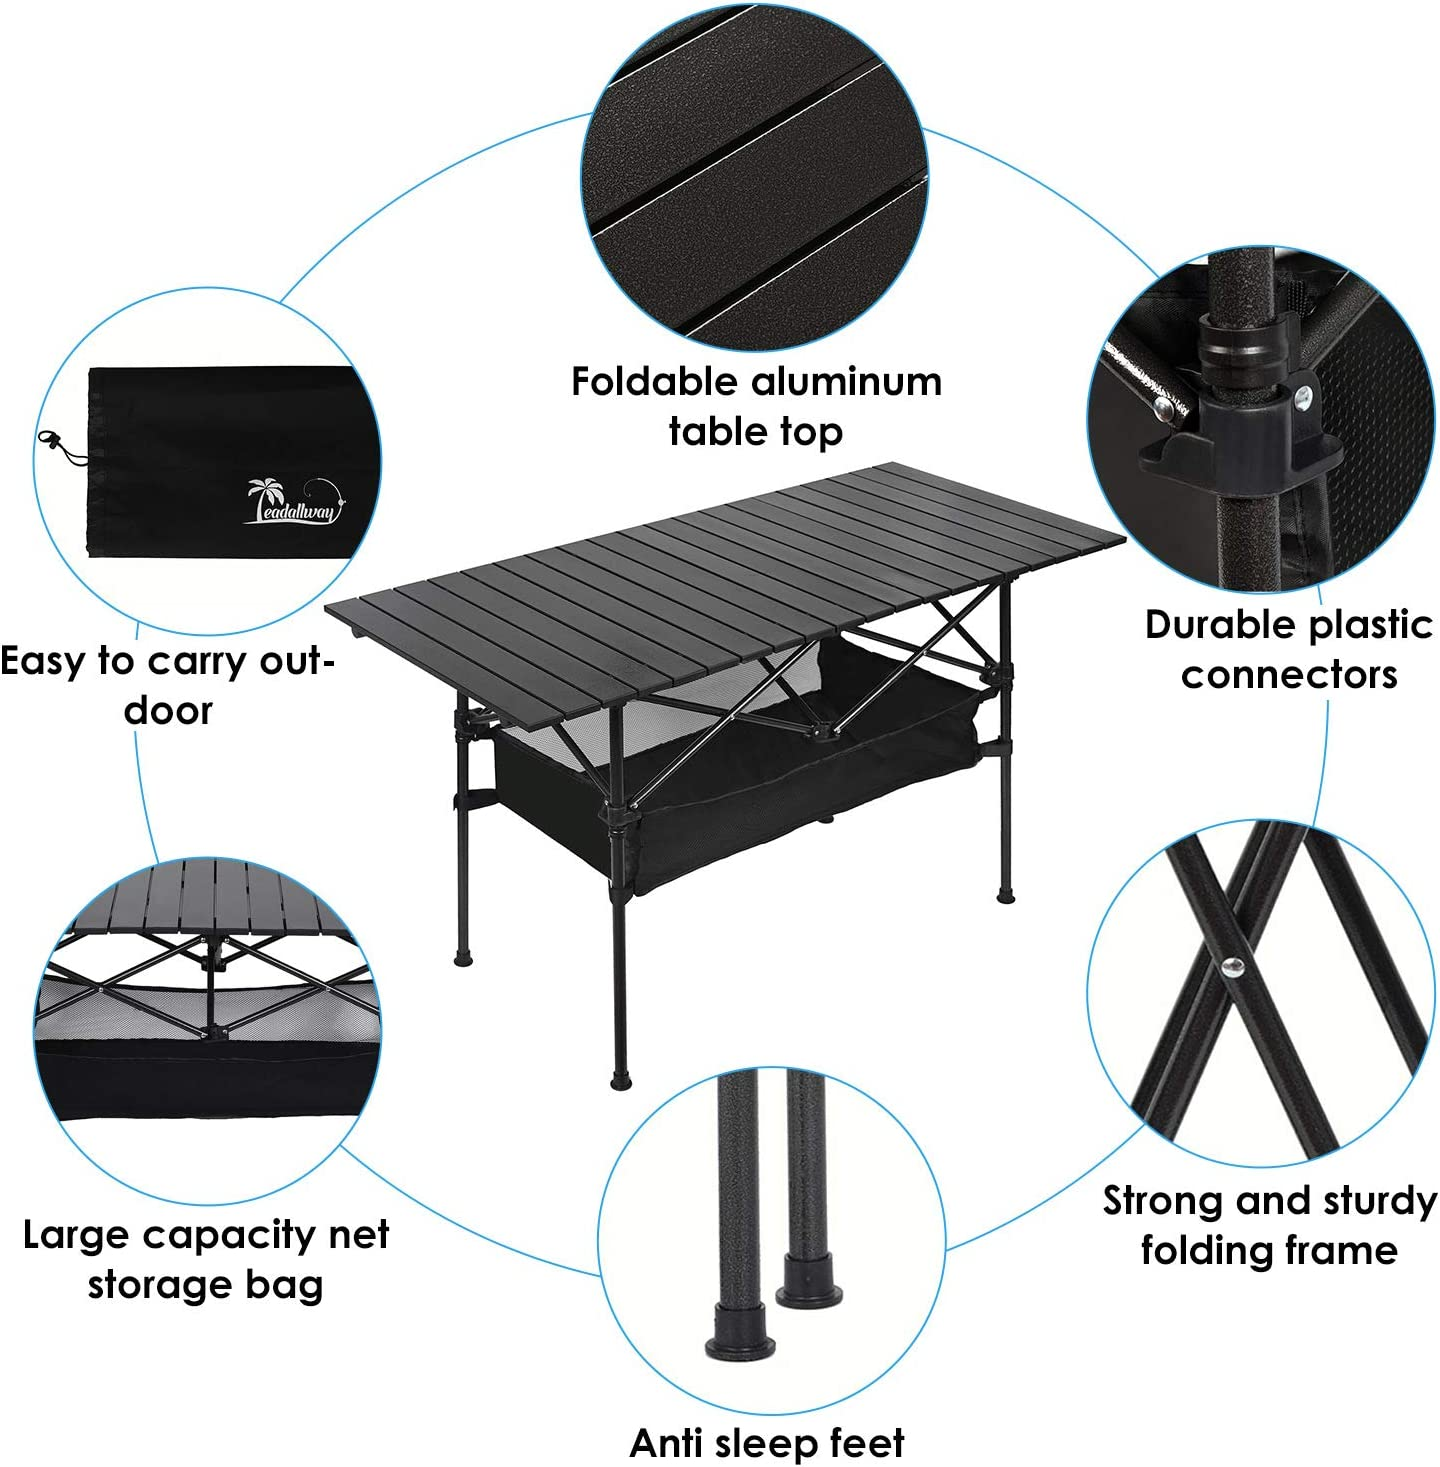 BBQ Outdoor Folding Camping Table Fishing Collapsible Beach Table for Outdoor Camp Picnic Travel Portable Aluminum Folding Table with Large Storage Organizer and Carrying Bags